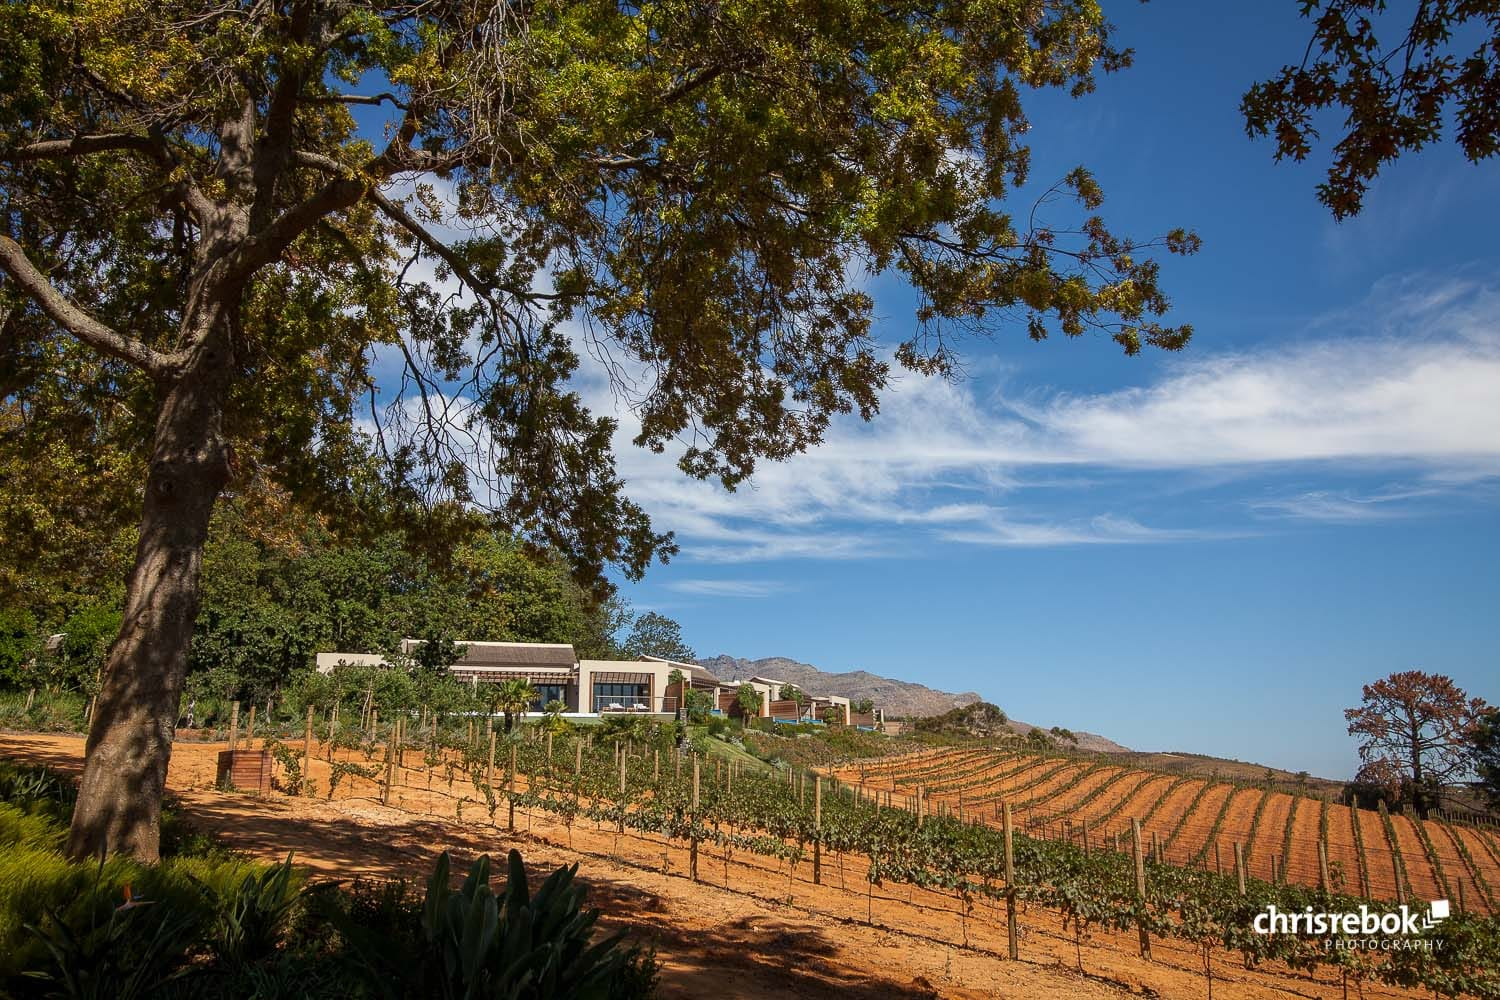 Delair Graff Wine Estate, Stellenbosch, South Africa